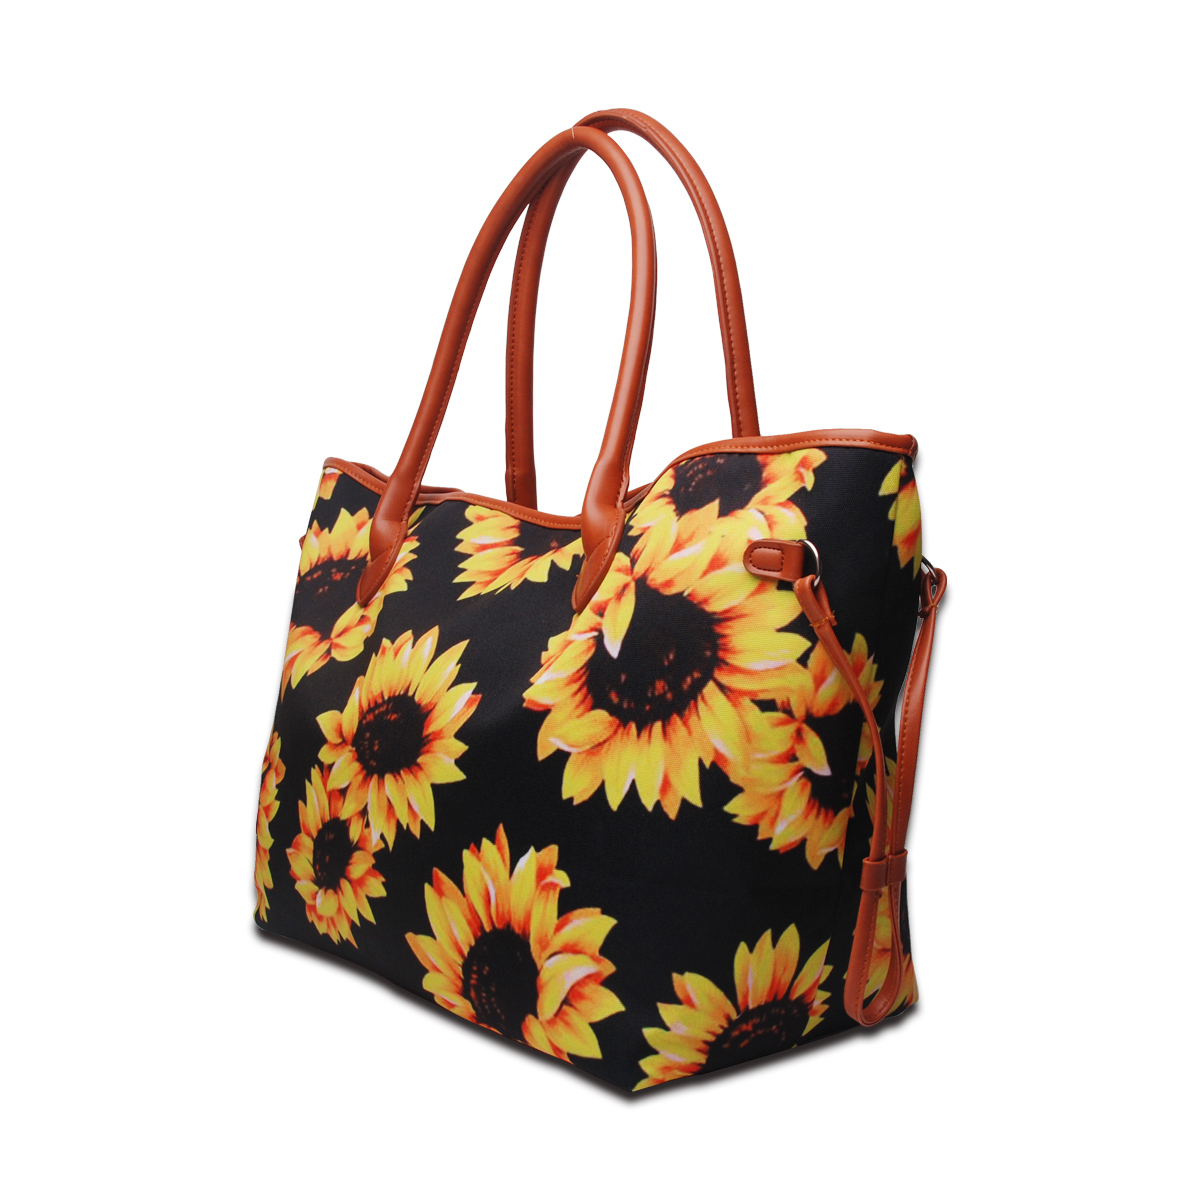 Sunflower New Arrival Shopping Bags Shoulder <strong>Totes</strong> For Women DMA71616